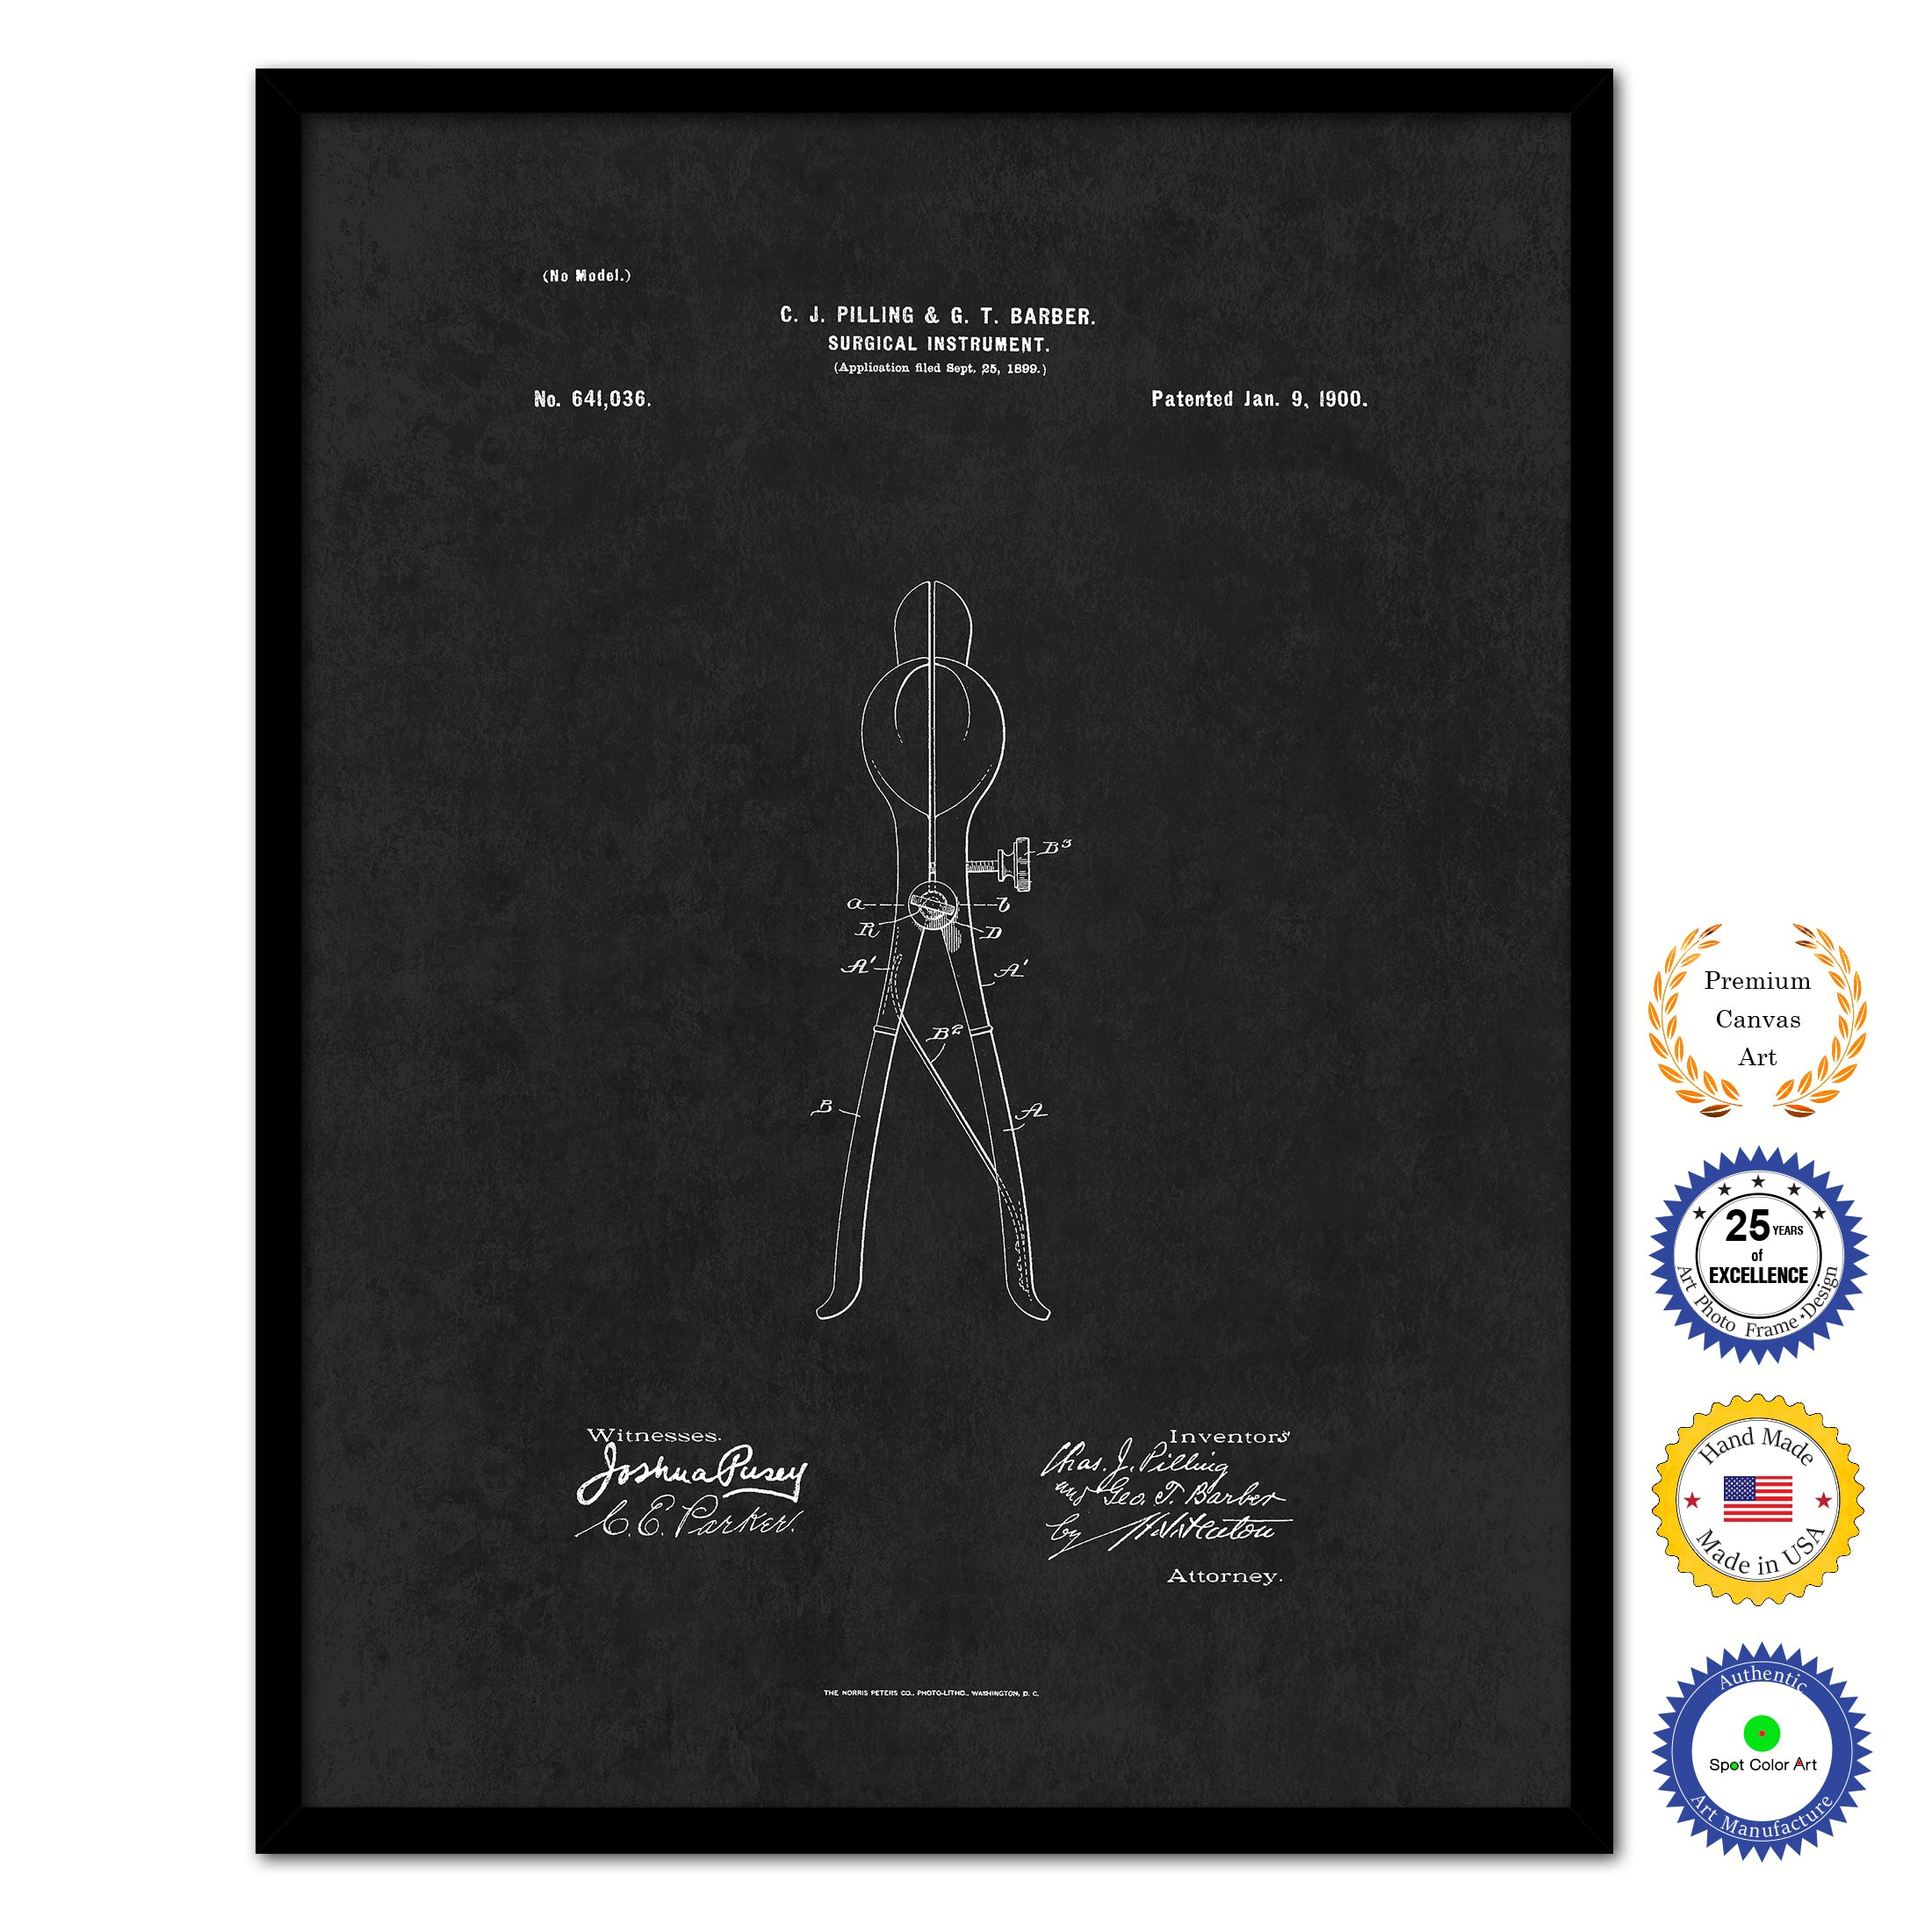 1900 Doctor Surgical Instrument Vintage Patent Artwork Black Framed Canvas Home Office Decor Great for Doctor Paramedic Surgeon Hospital Medical Student